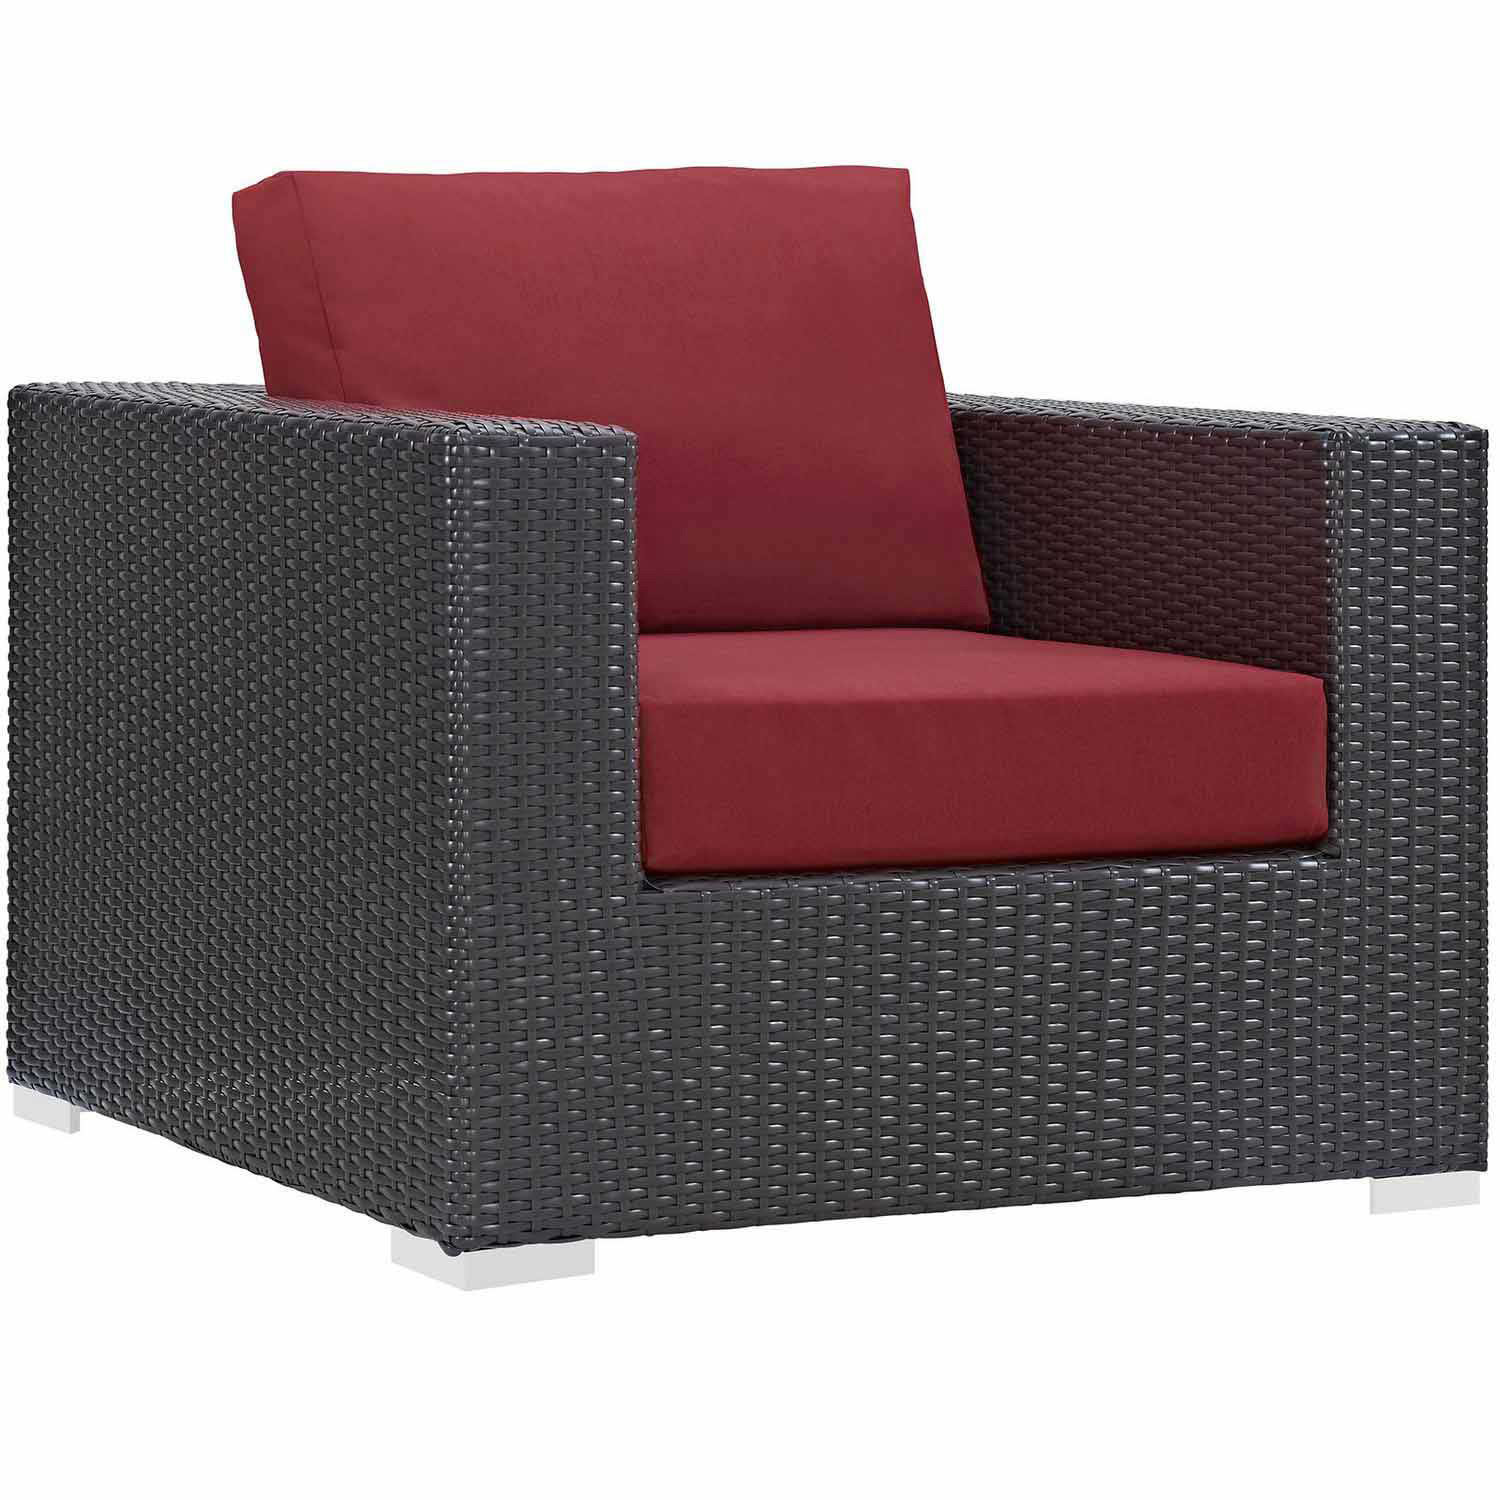 Modway Convene Outdoor Patio Arm Chair - Red